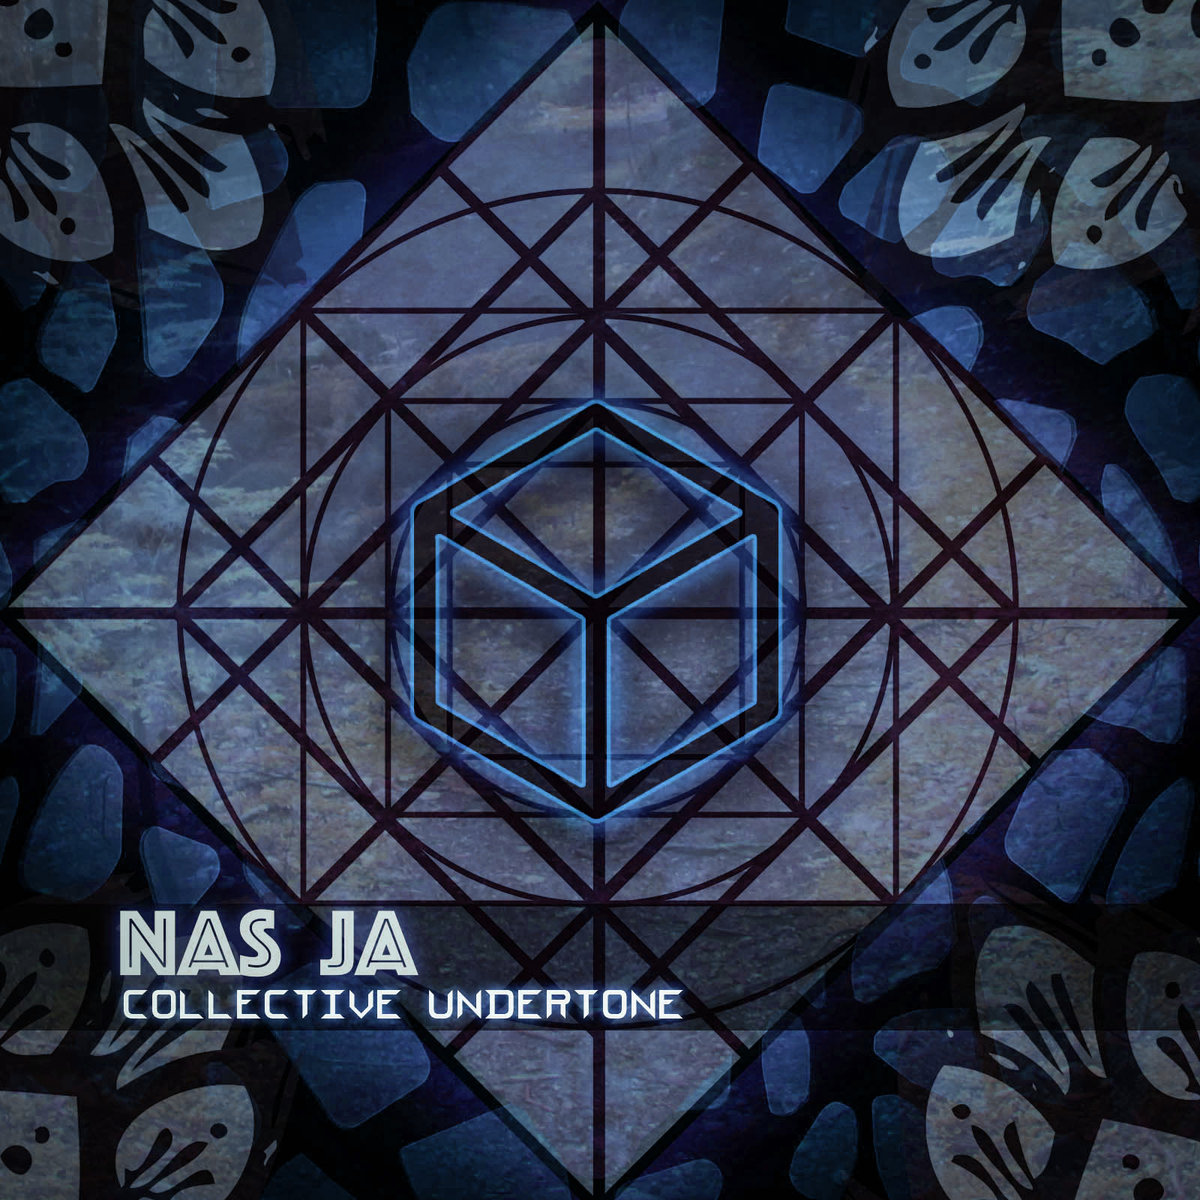 Nas-Ja - Imagine @ 'Collective Undertone' album (bass, electronic)